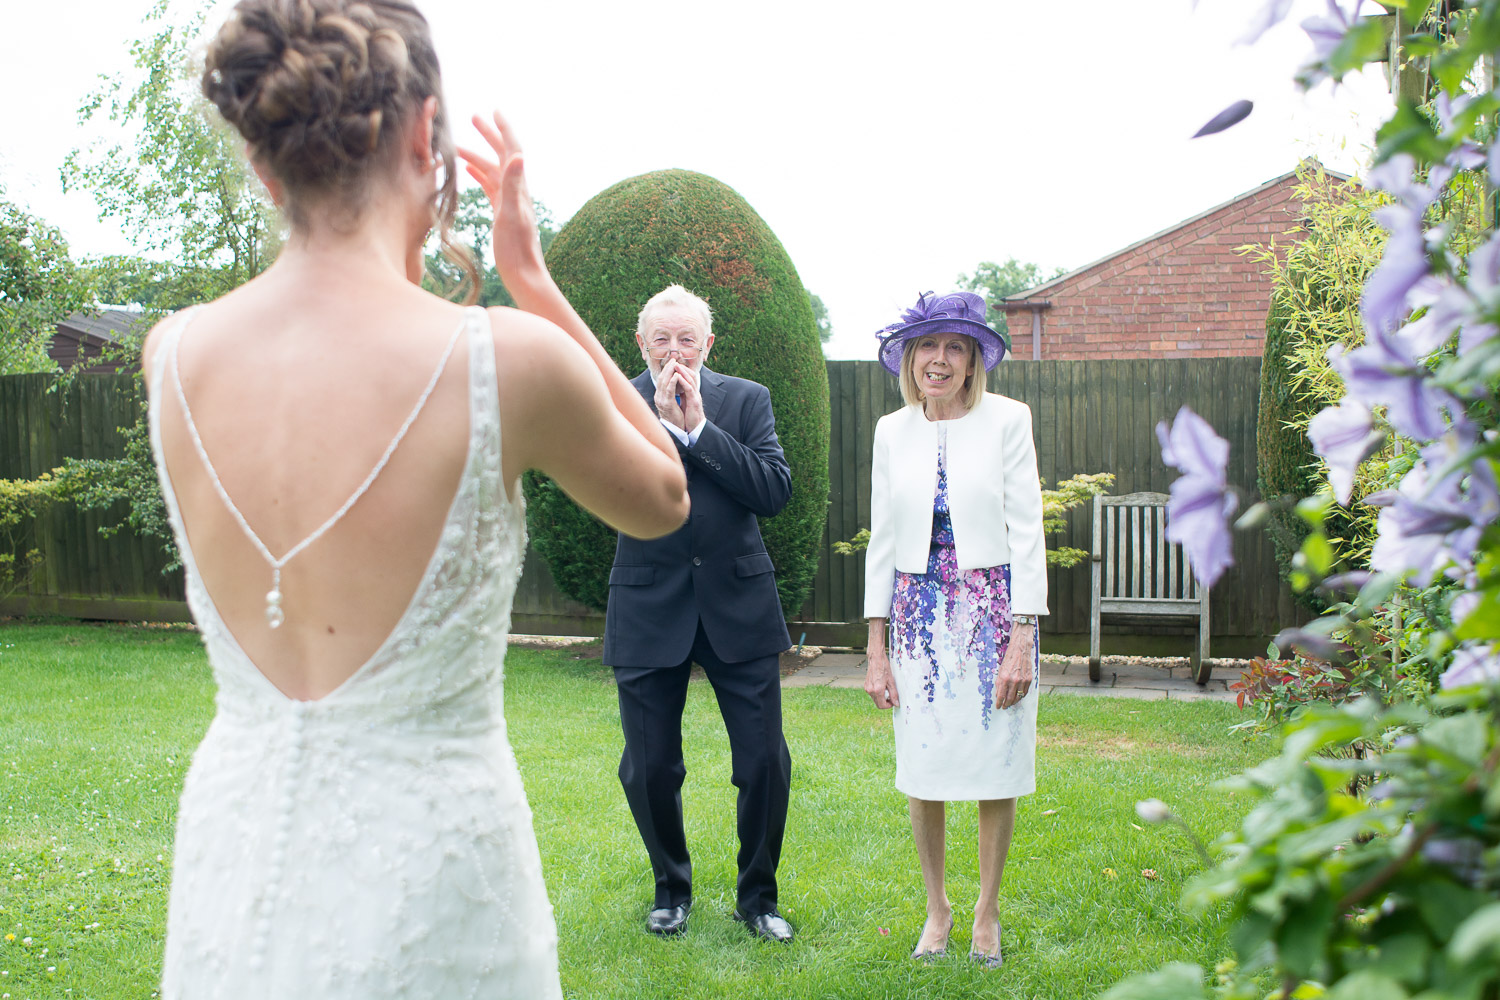 parents faces when they see their daughter in her wedding dress at wedding yurts wedding in leicestershire